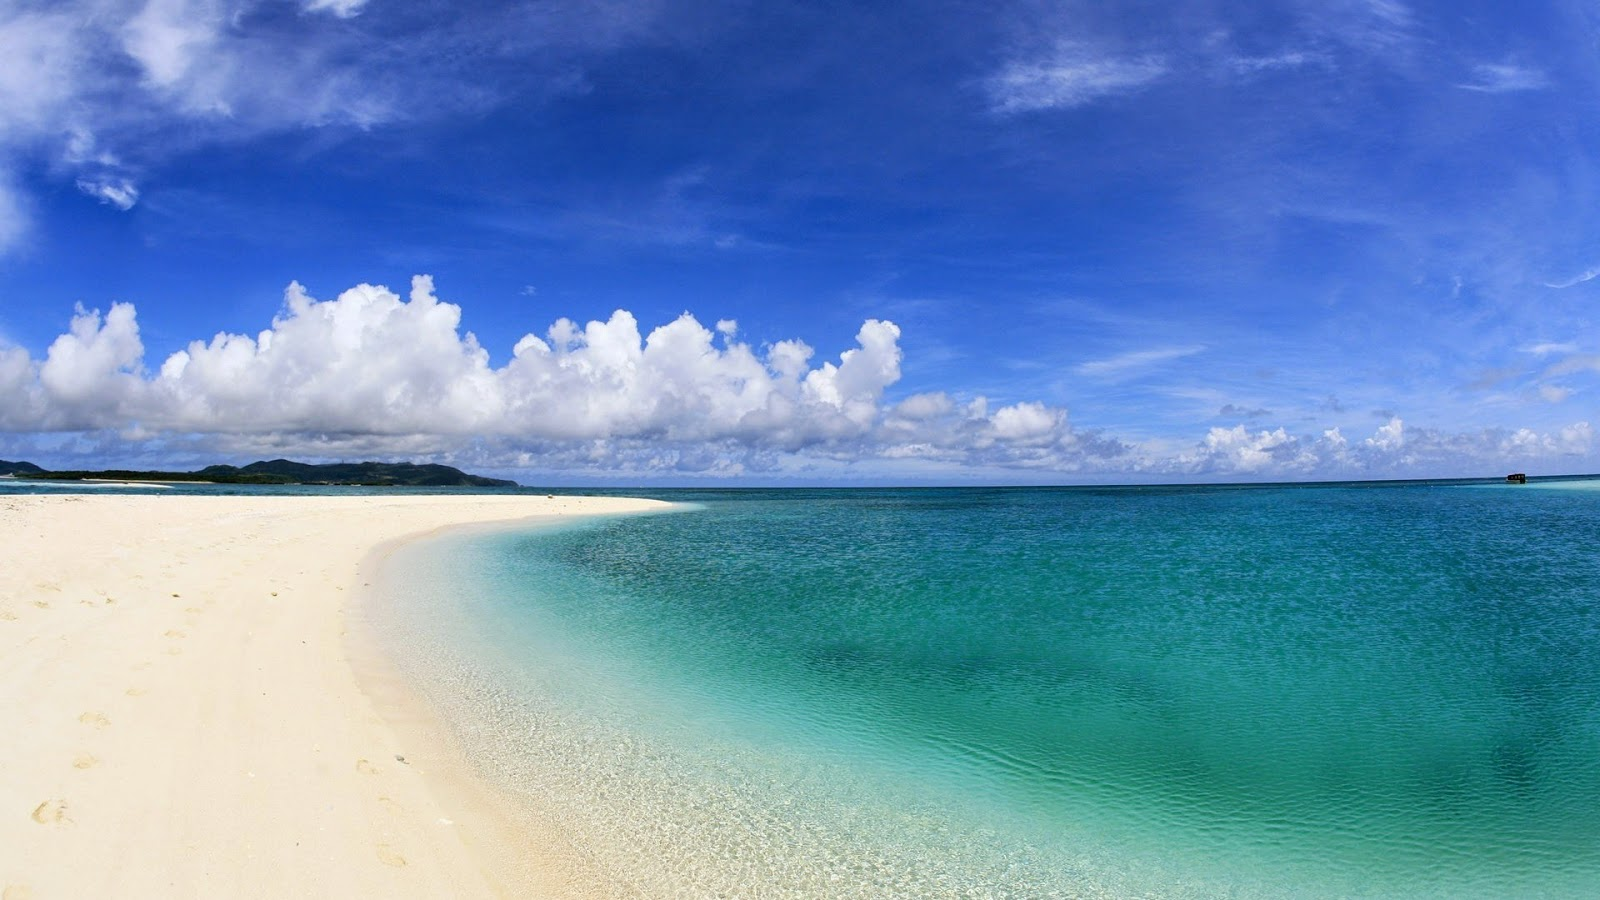 clear-greenish-blue-sea-water-white-sand-empty-beach-neat-picture-HD.jpg